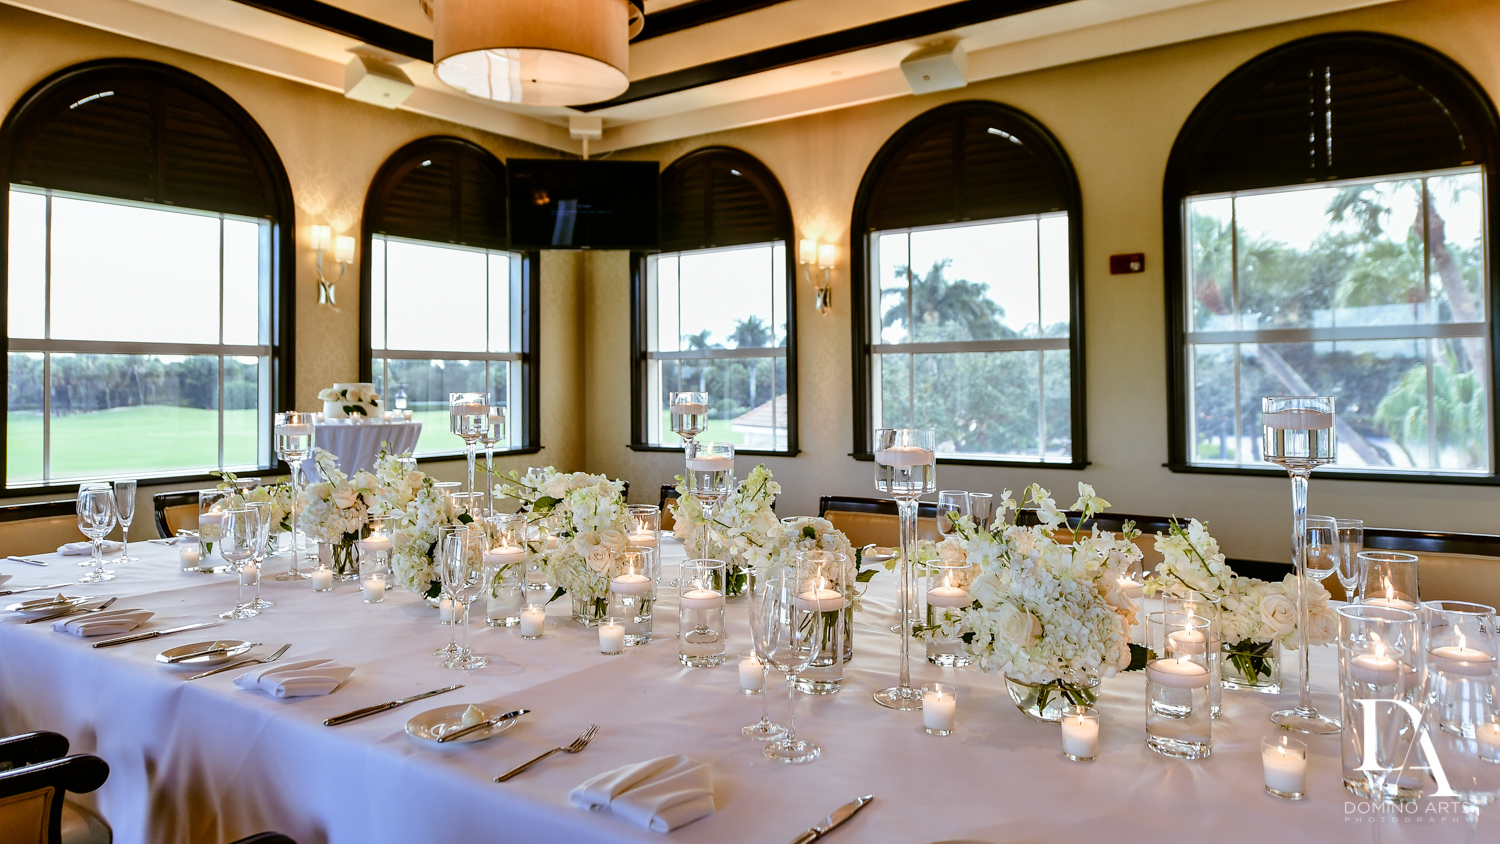 luxury table decor at Beautiful Intimate Wedding at Mizner Country Club by Domino Arts Photography